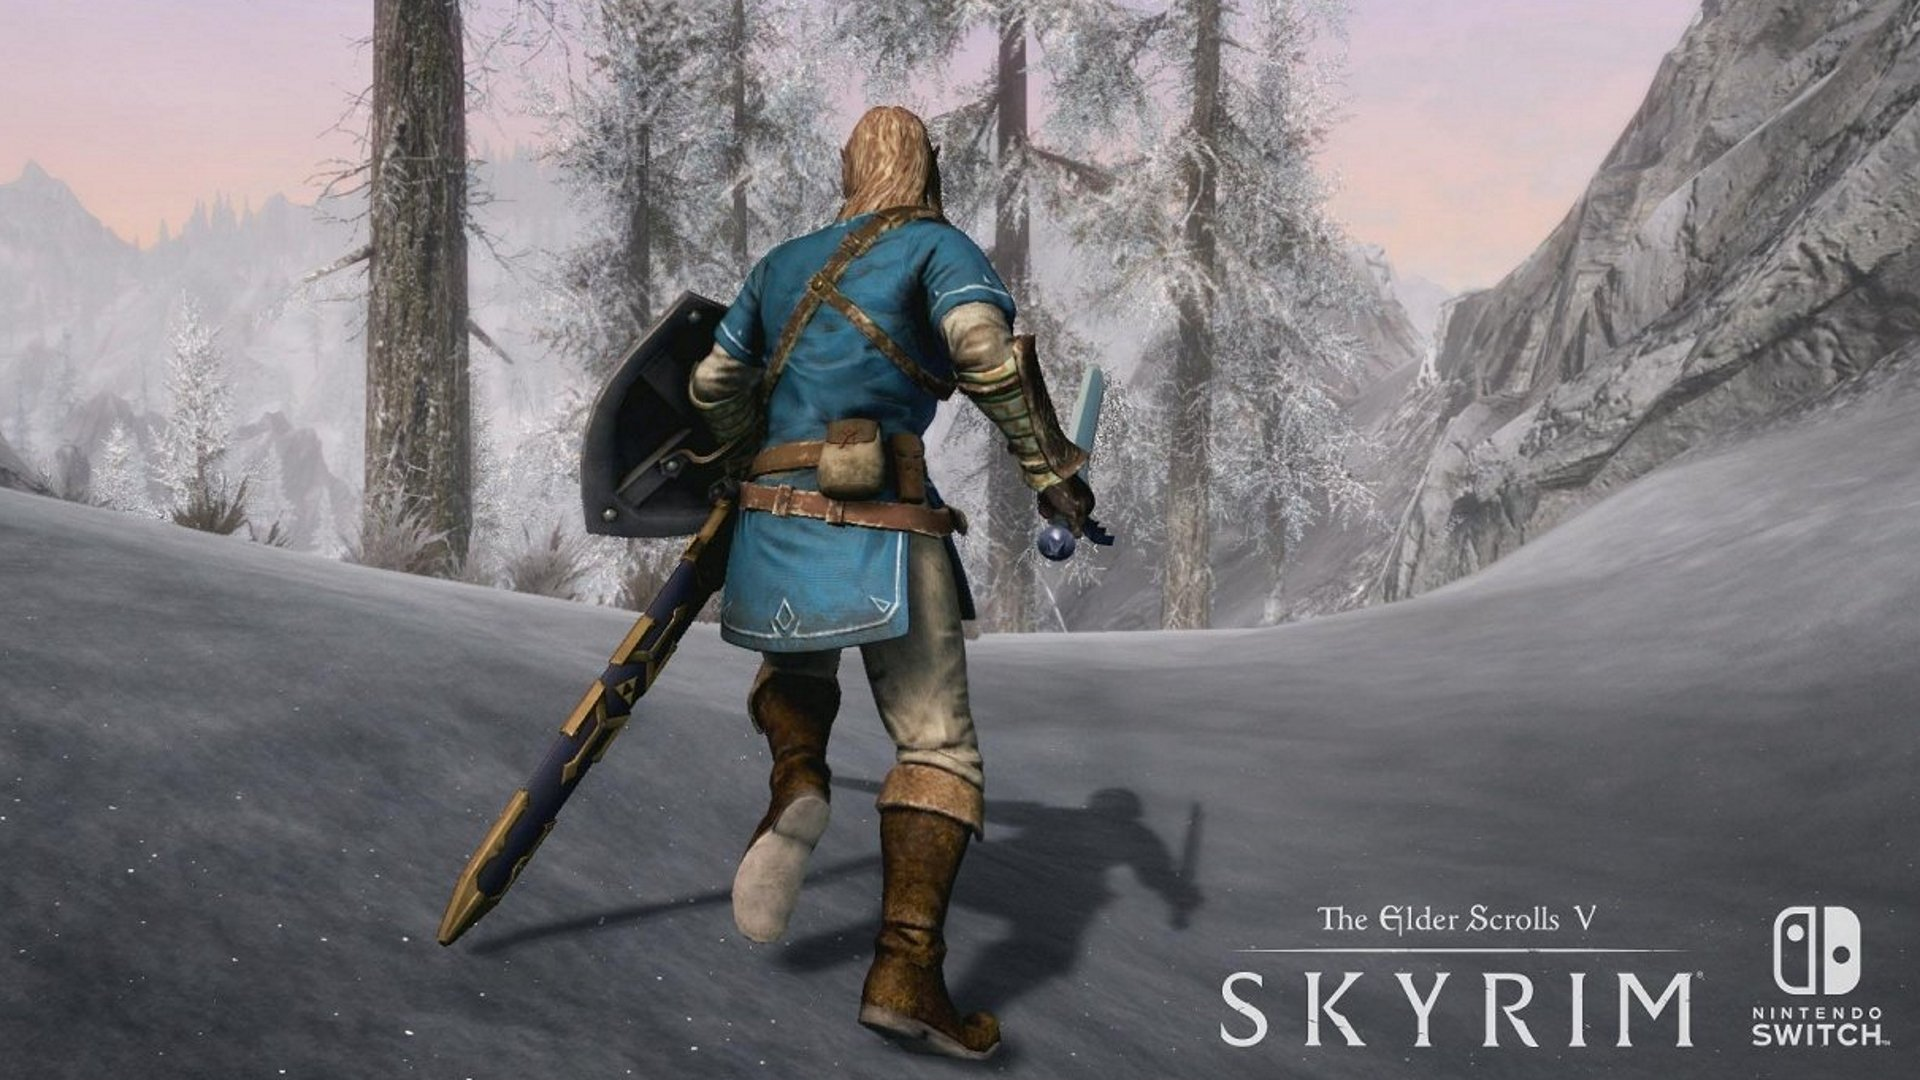 Mods for Skyrim Switch don't sound likely